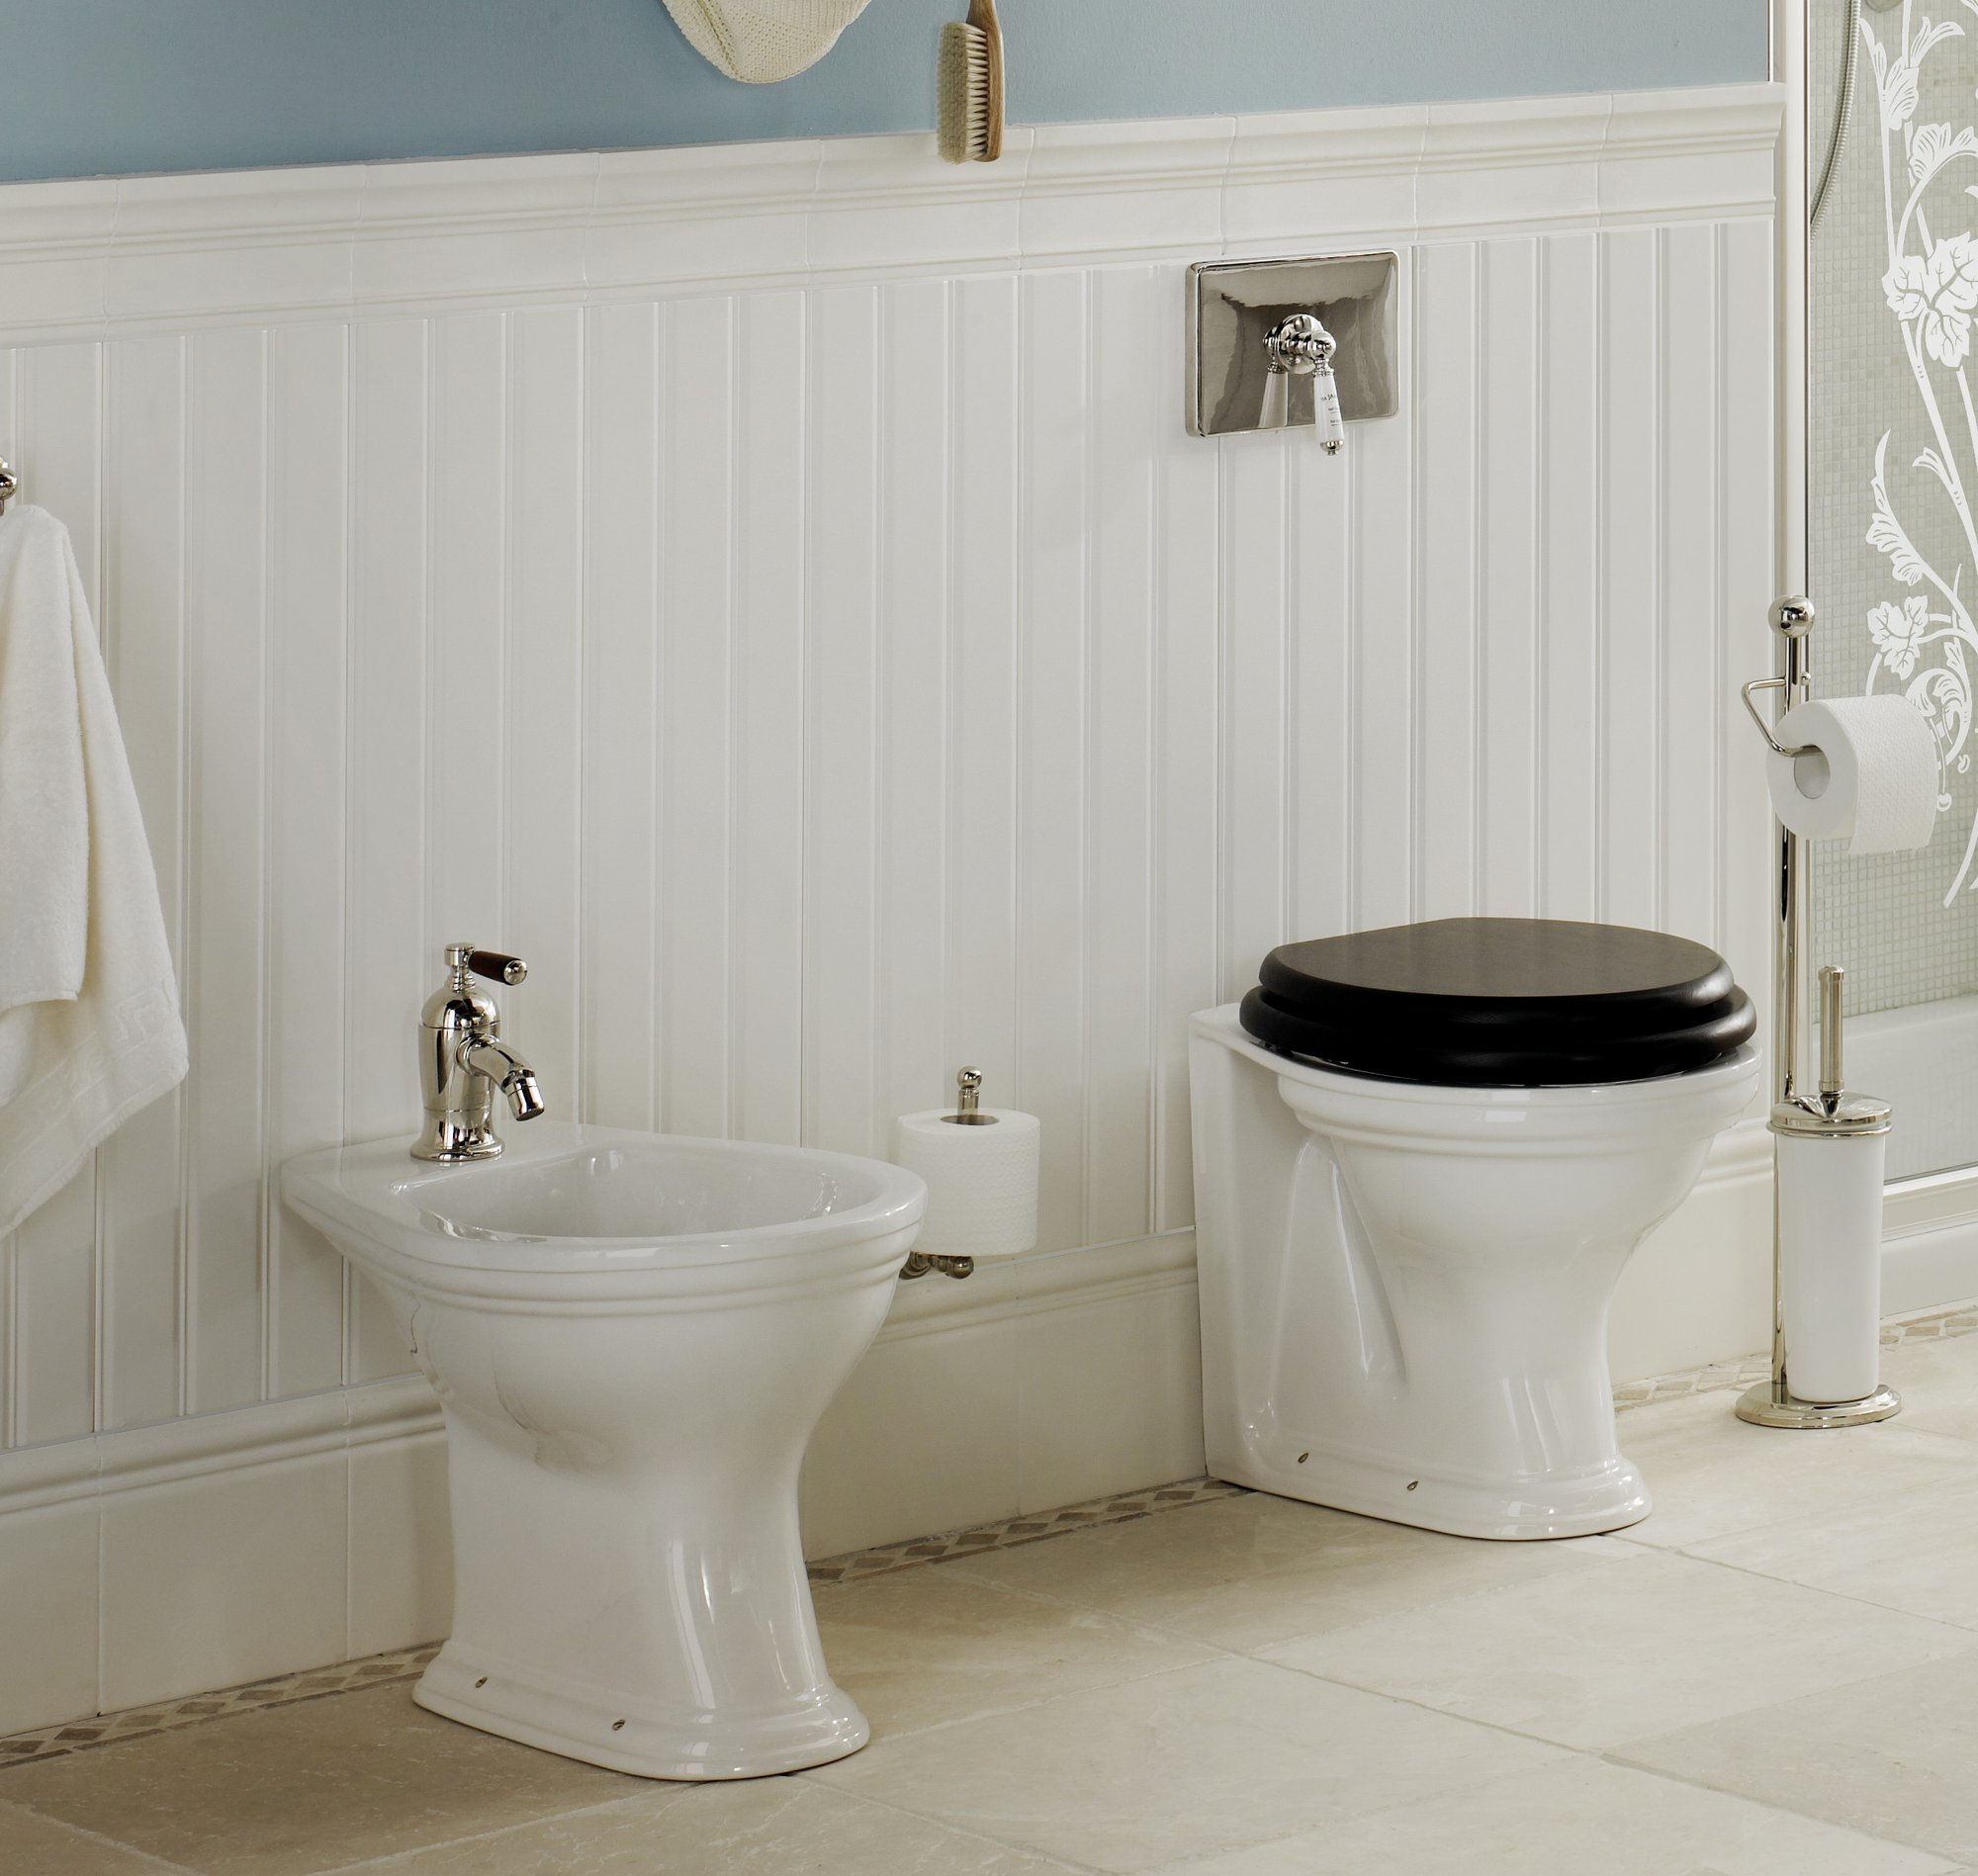 BOISERIE TRADITIONAL BATHROOMS - Fliesen 20 x 30 weiss